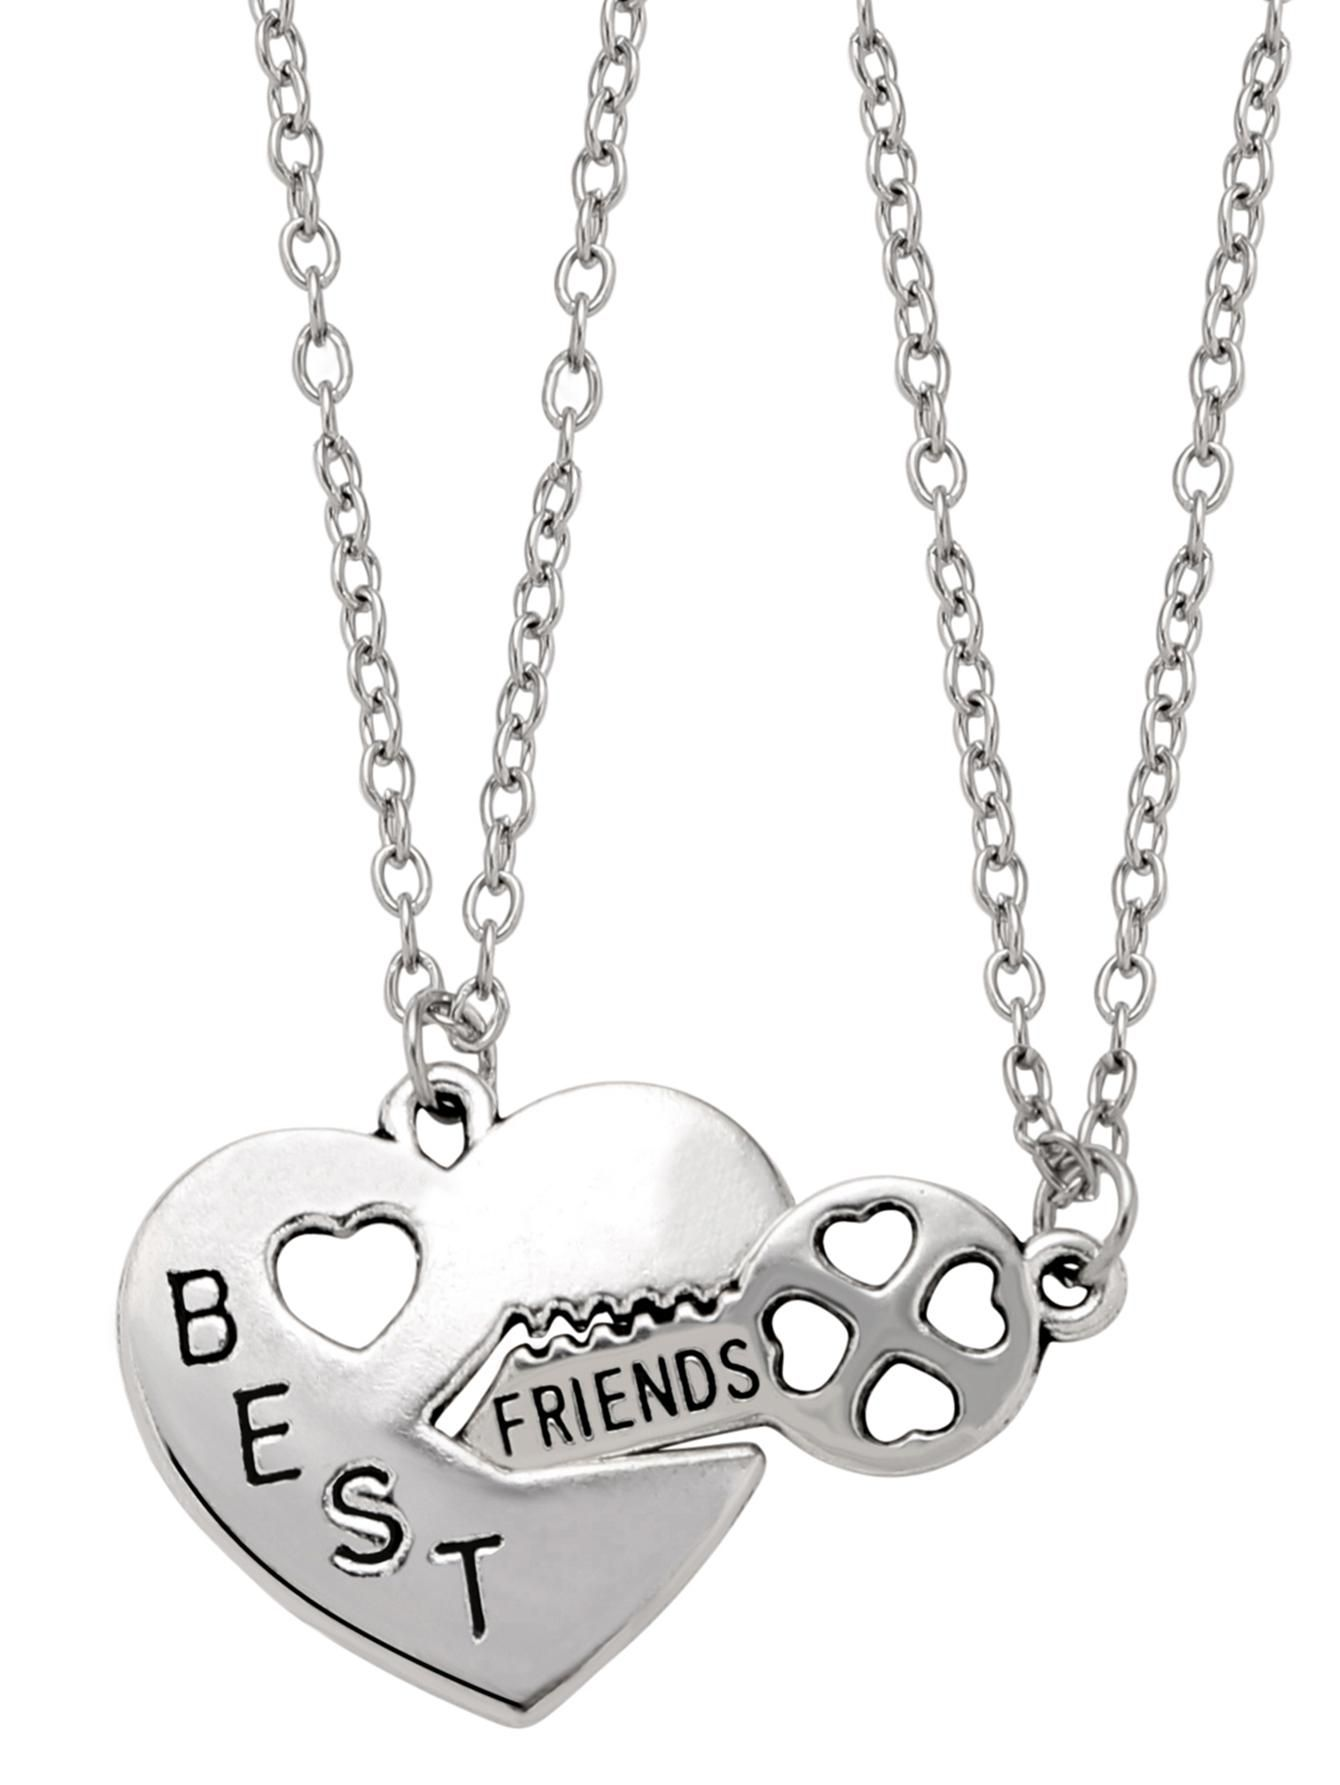 Silver letter etched heart lock and key pendant necklace set key